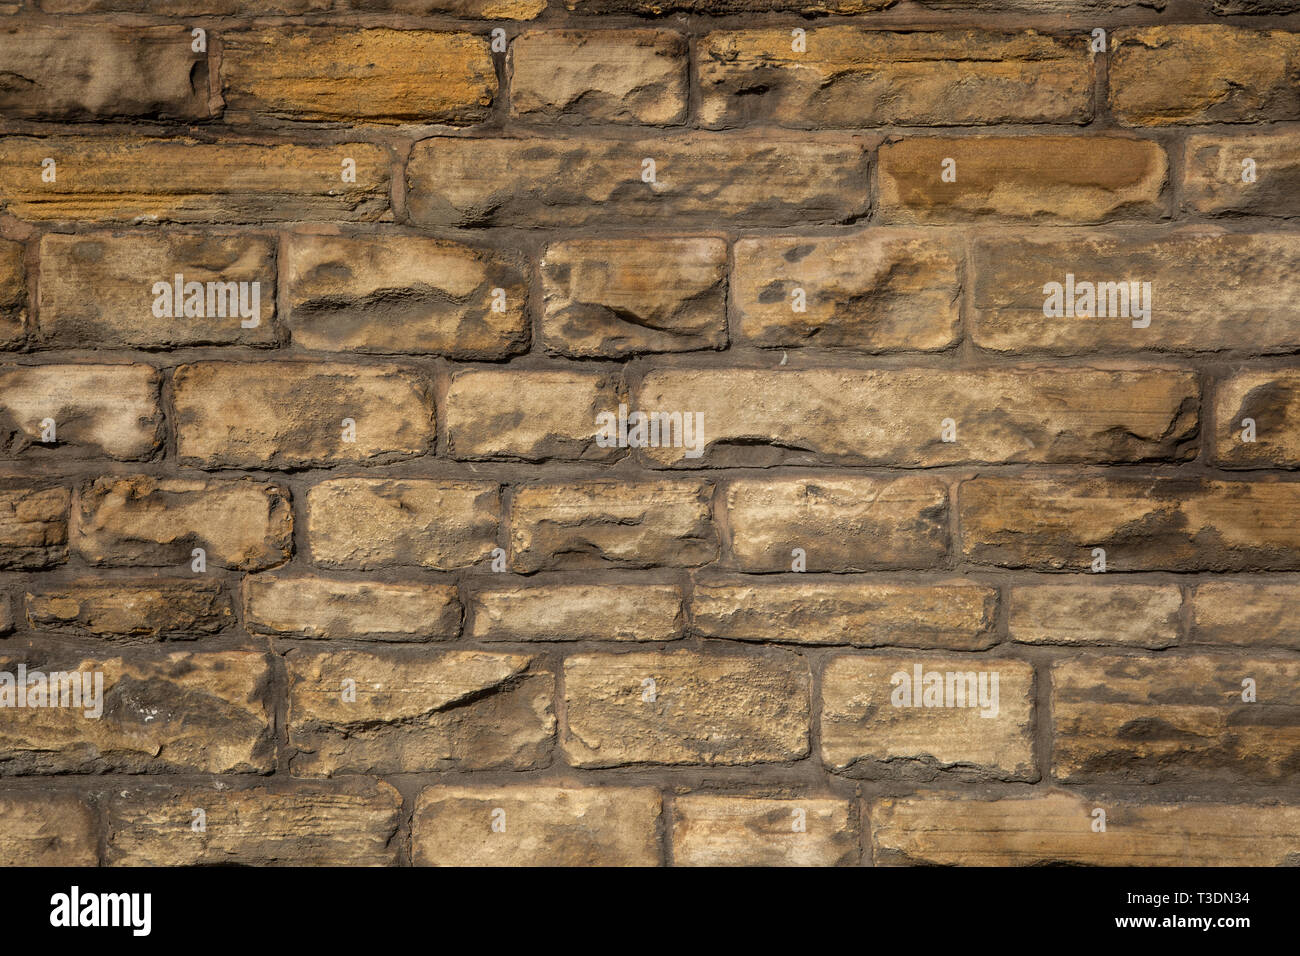 Close-up of brown brick wall with grey mortar St Helens Merseyside Lancashire March 2019 Stock Photo